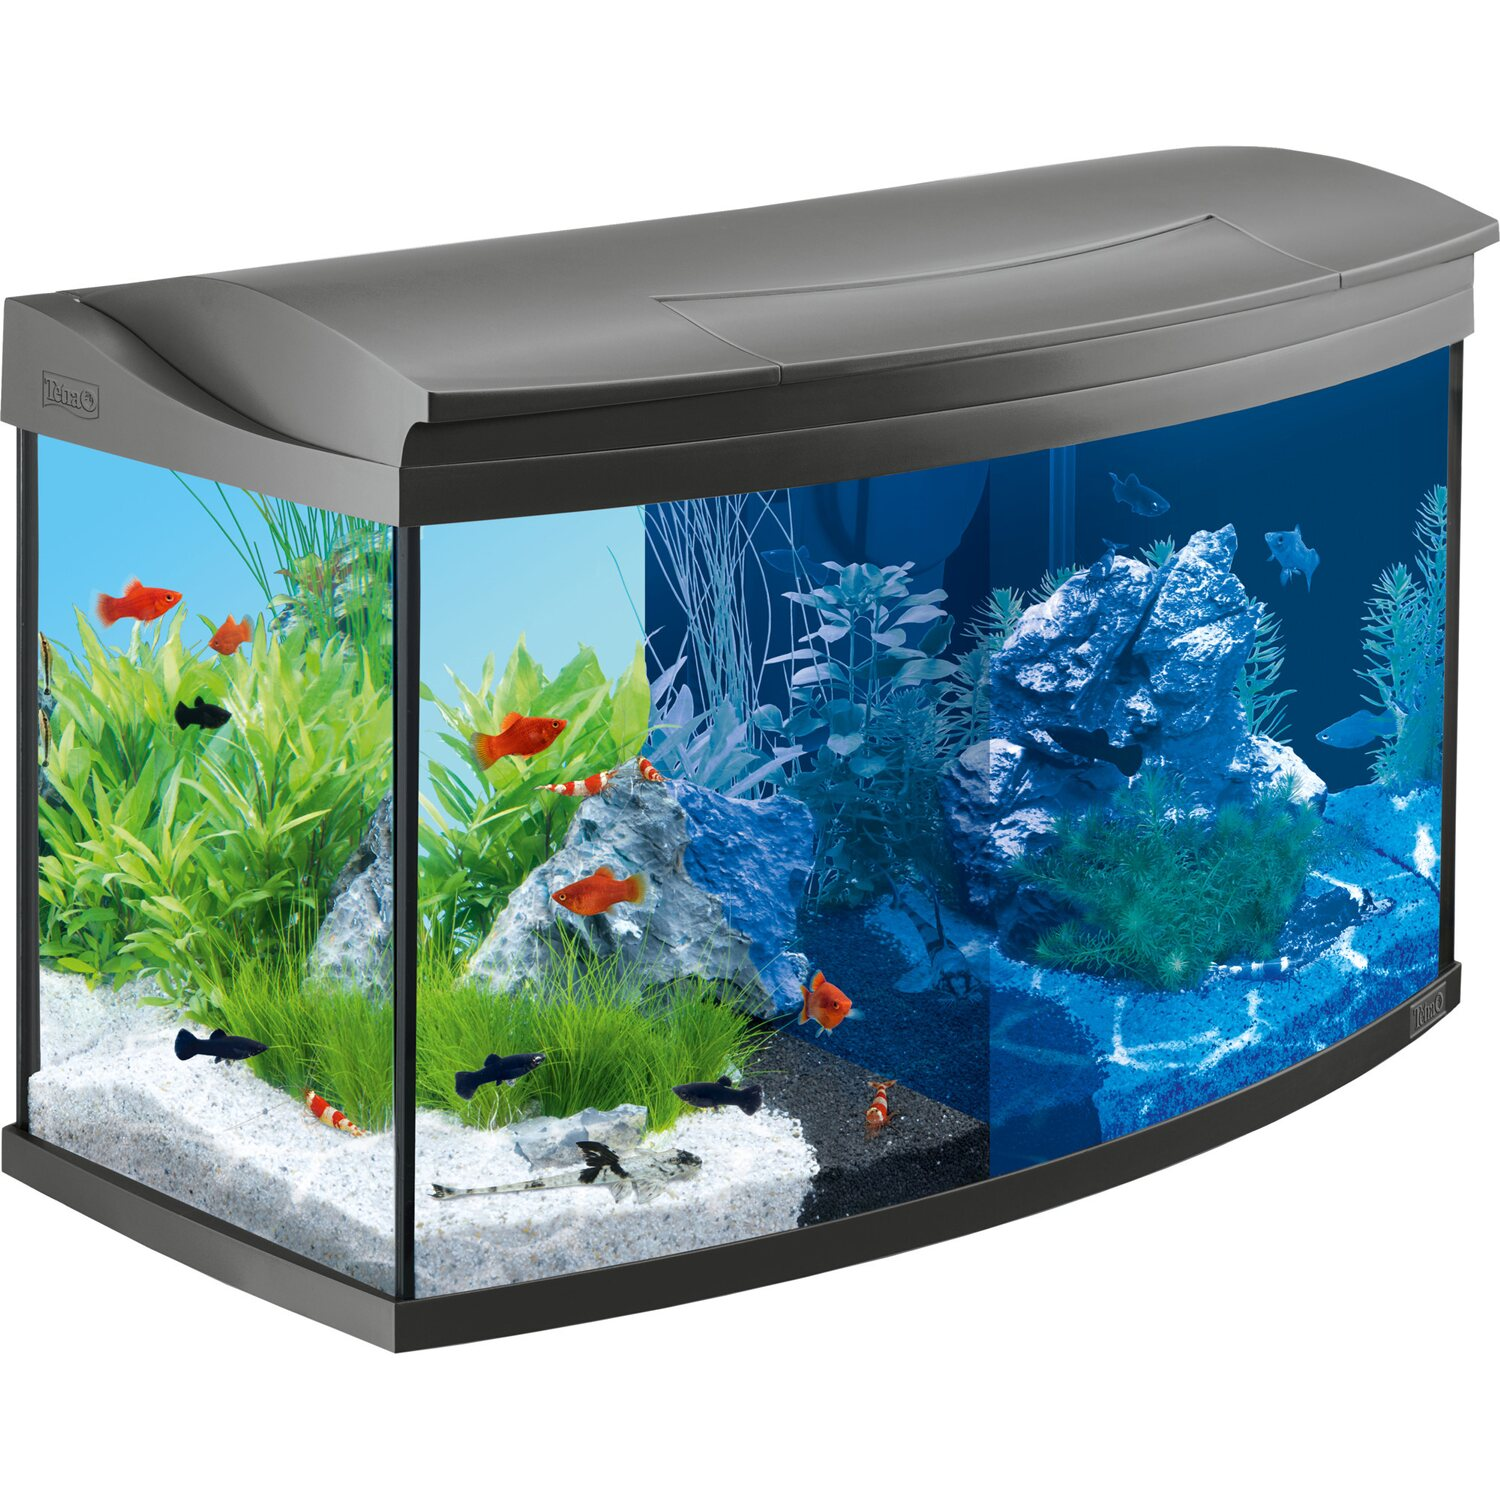 tetra aquarium set aquaart ii evolution line led 100 l anthrazit kaufen bei obi. Black Bedroom Furniture Sets. Home Design Ideas